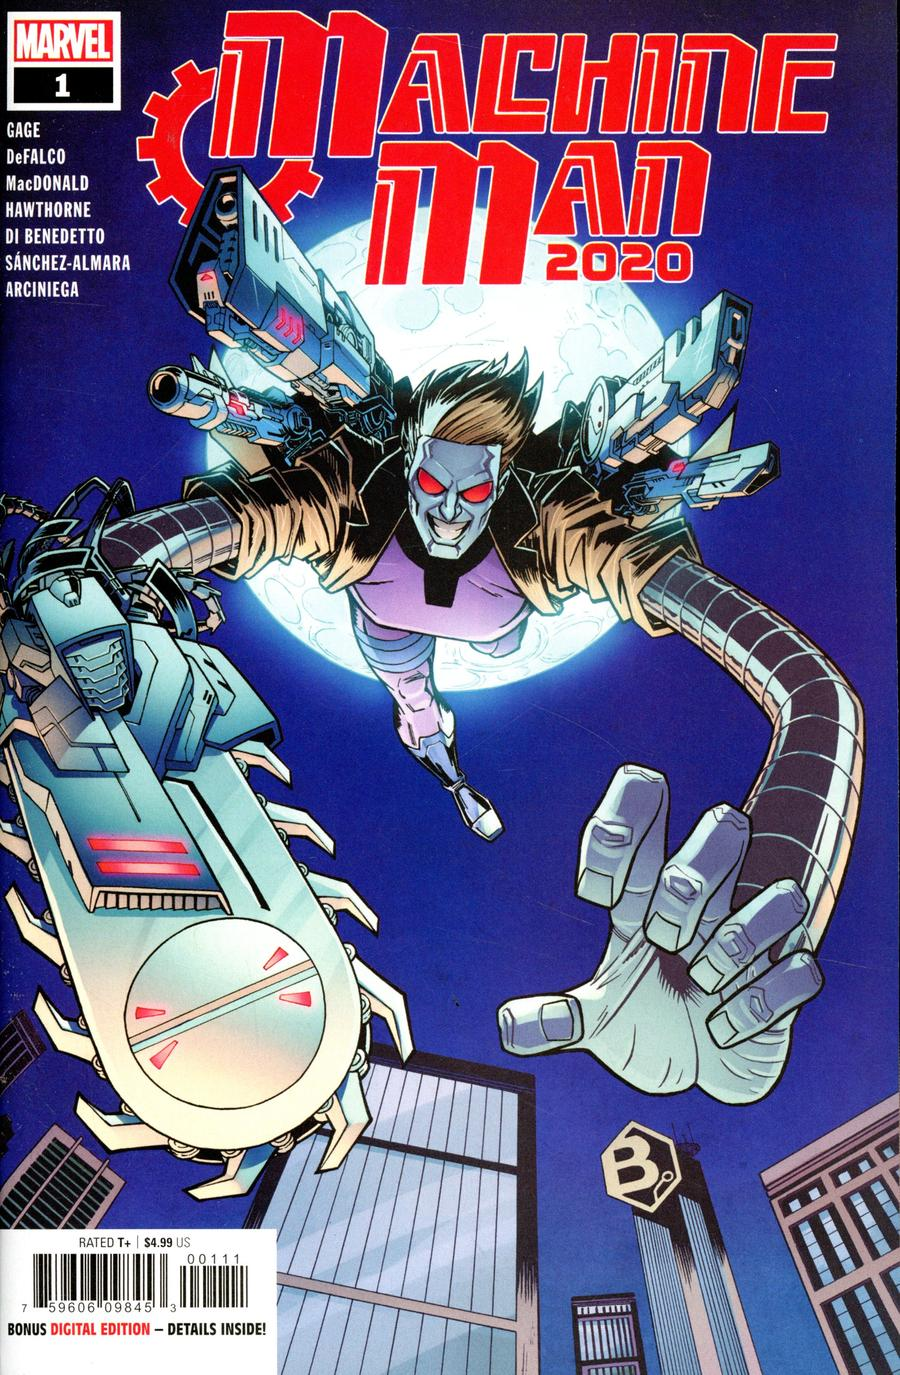 2020 Machine Man #1 Cover A Regular Nick Roche Cover